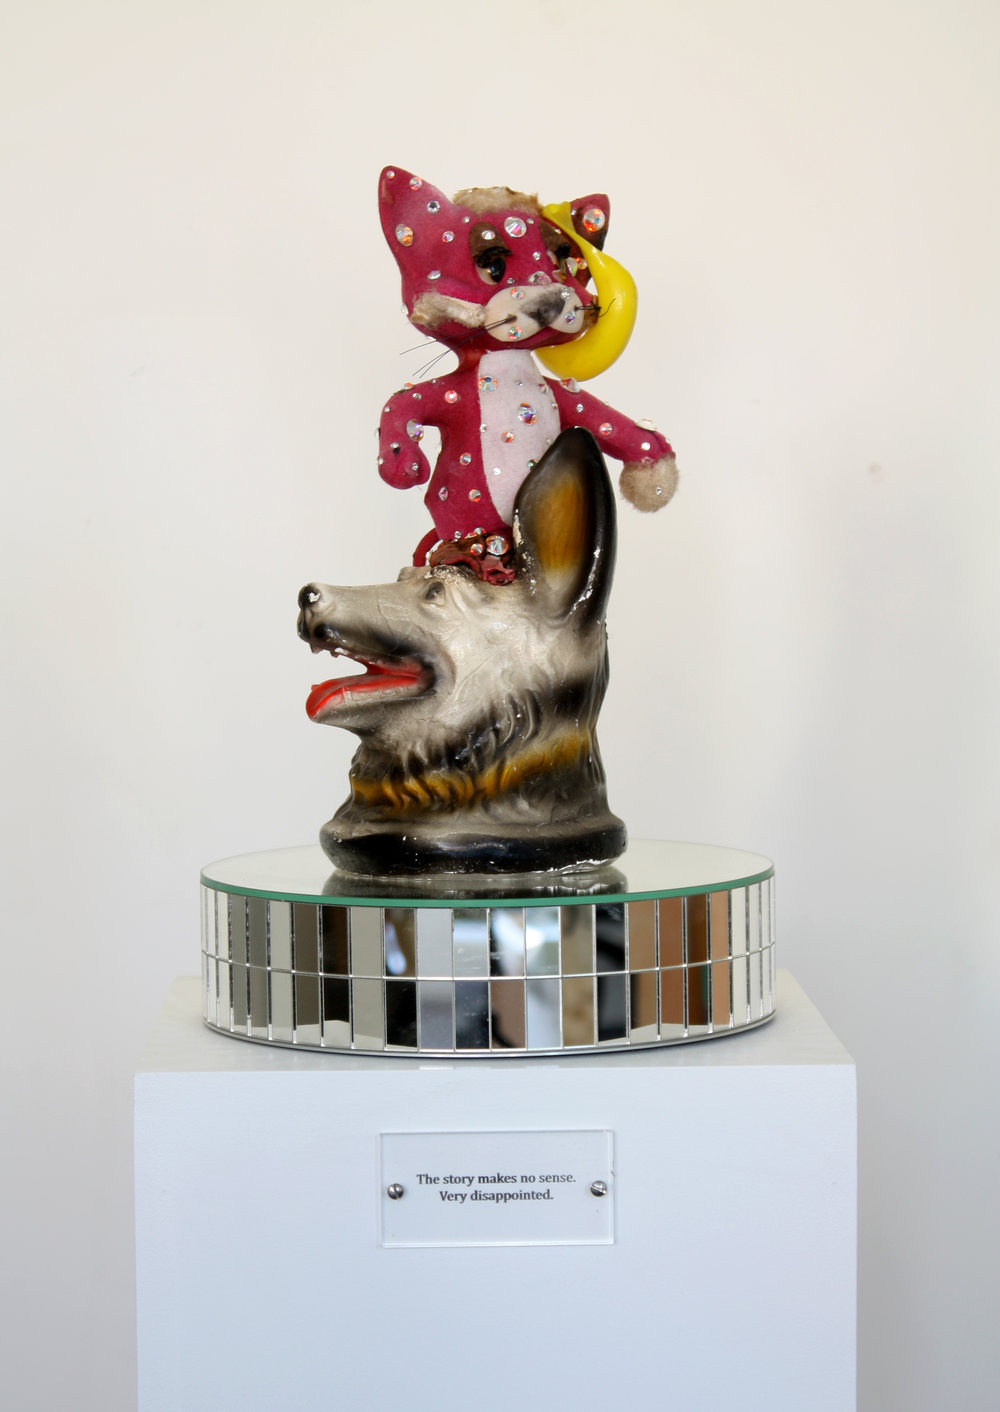 The Story Makes no Sense. Very Disappointed (Philip K. Dick), 2014 painted wood base, rotating support mirror, engraved plexiglass, objects 135 x 25 x 25 cm - 53 1/8 x 9 7/8 x 9 7/8 inches